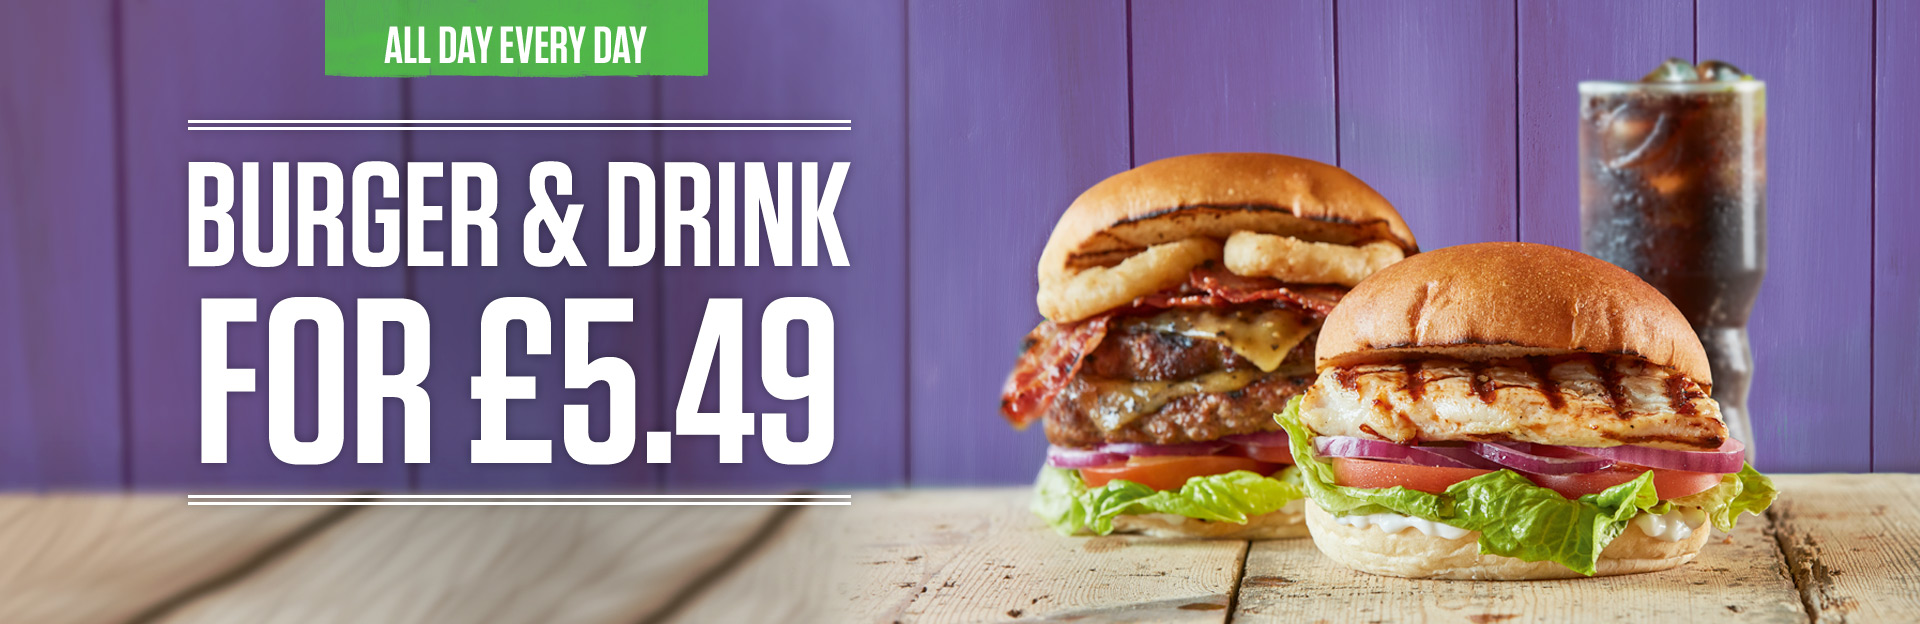 Burger and Drink Deal at The Man on the Moon